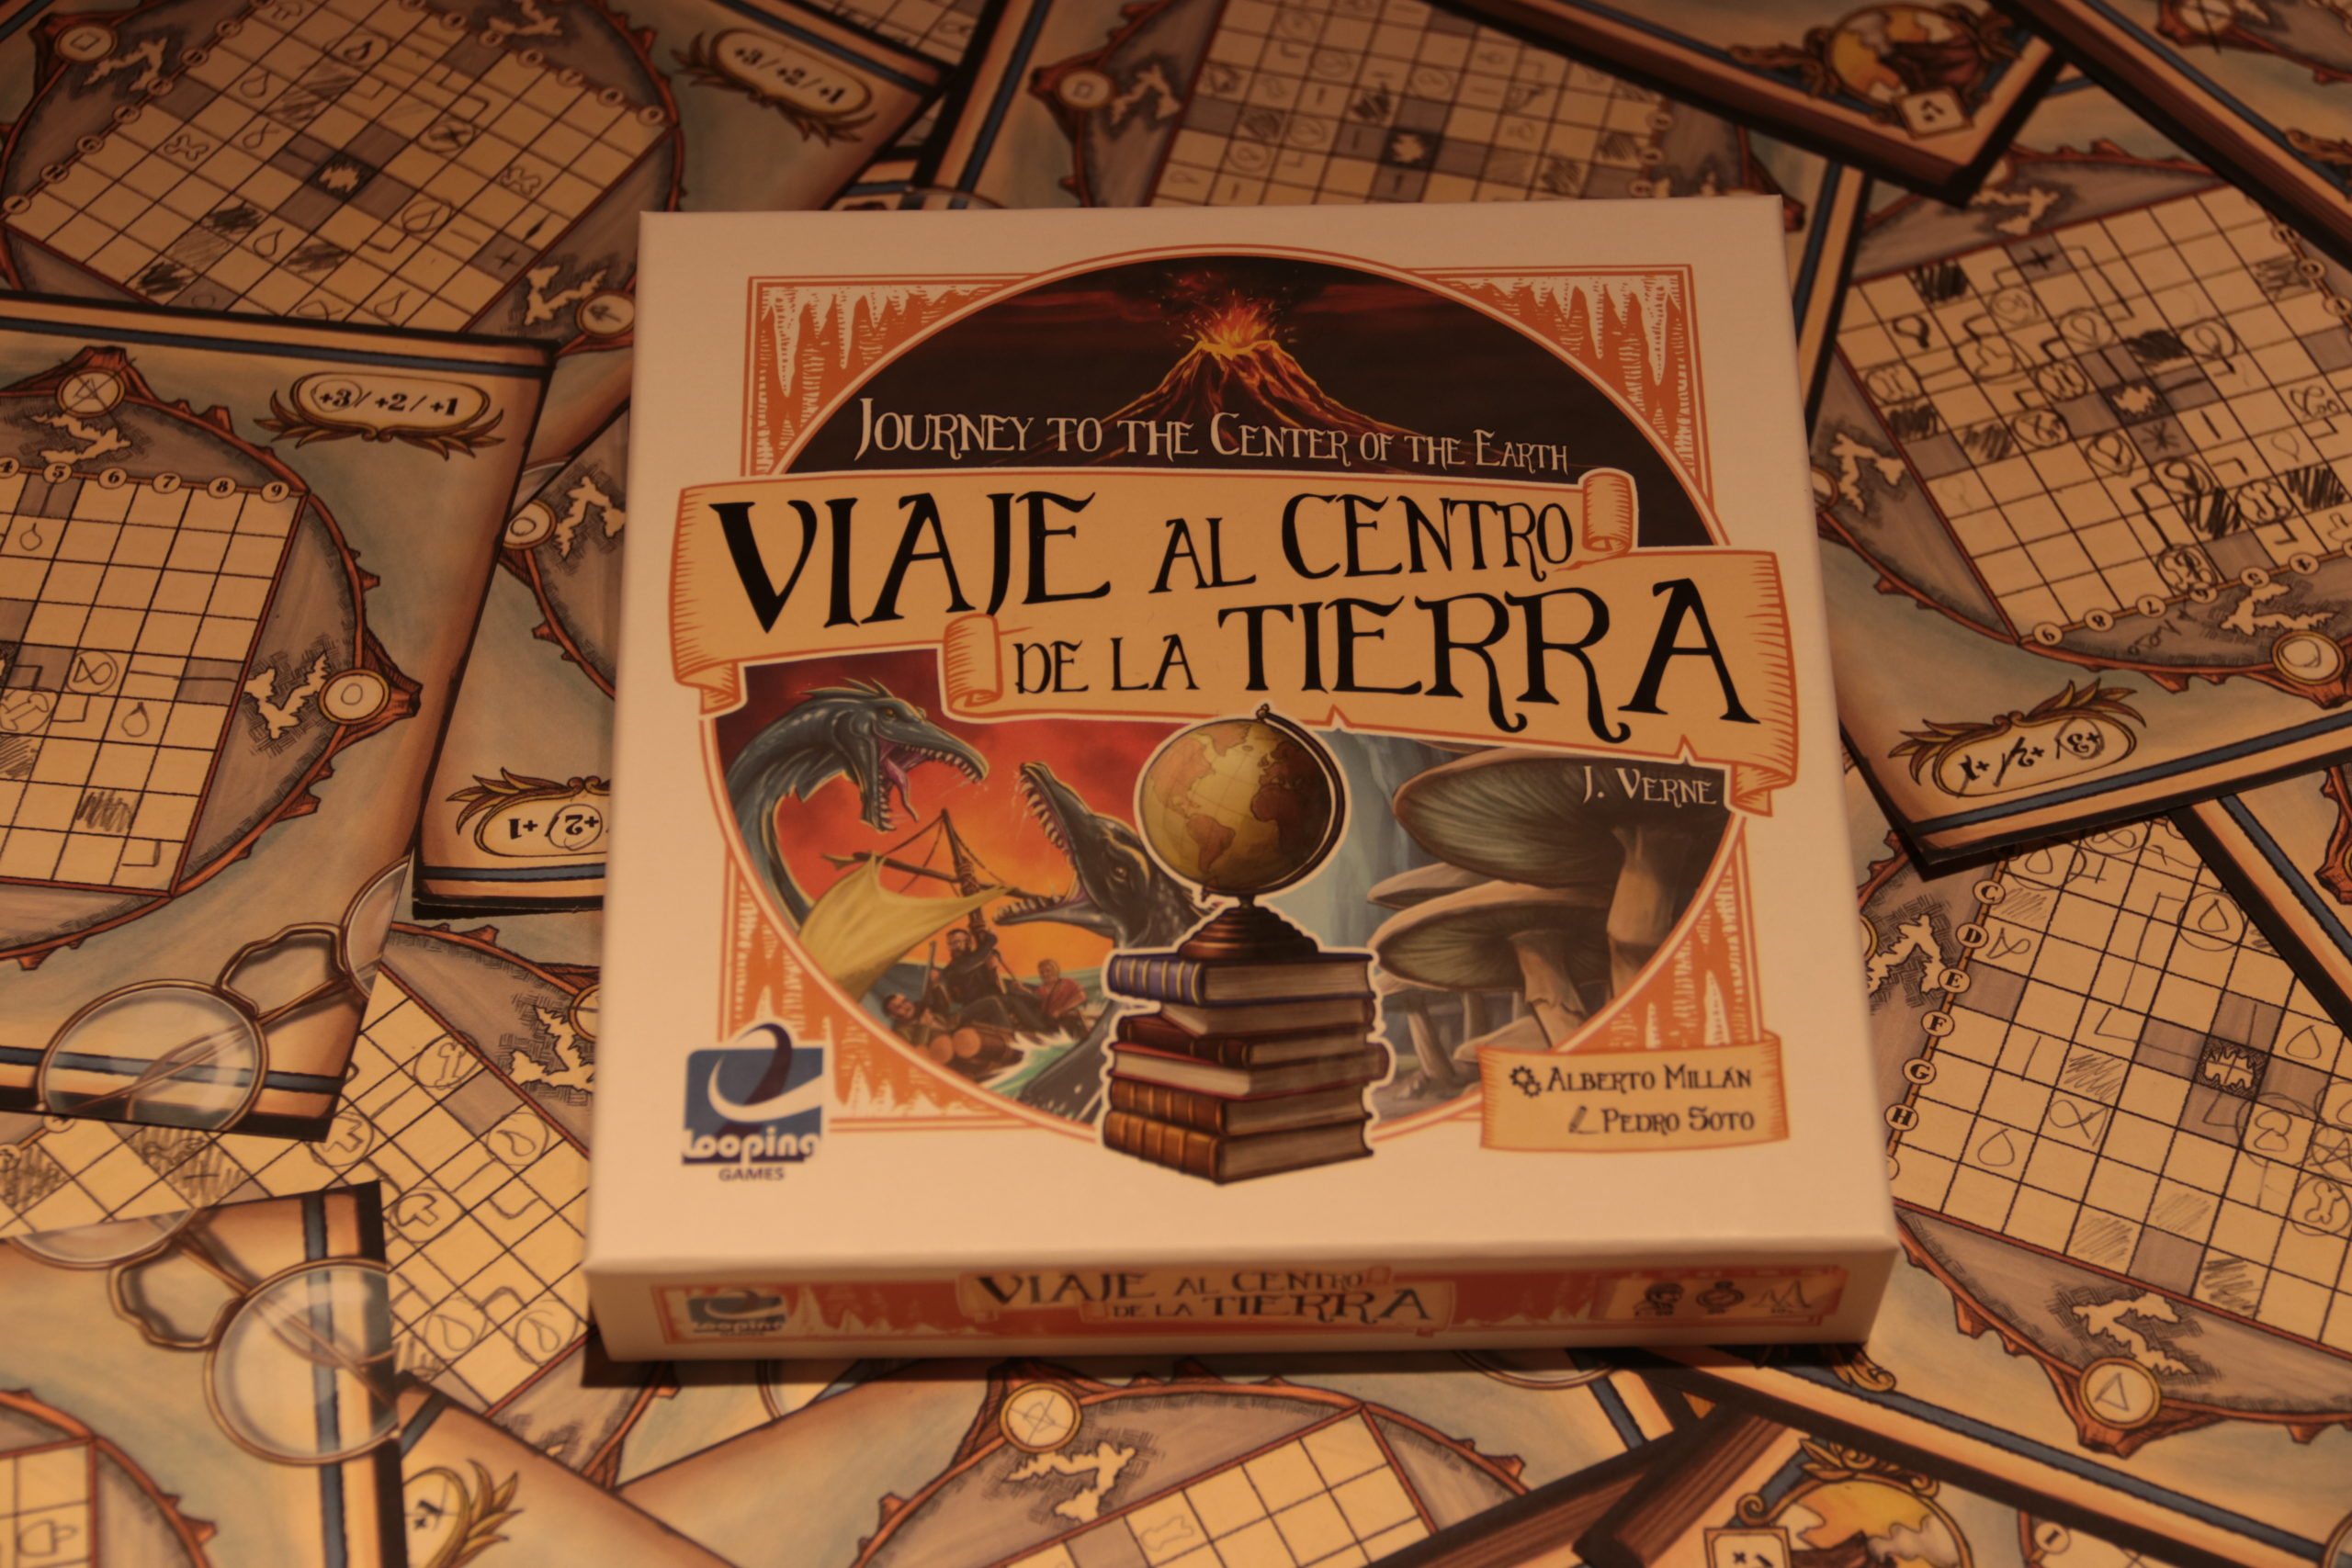 The last board games we have played